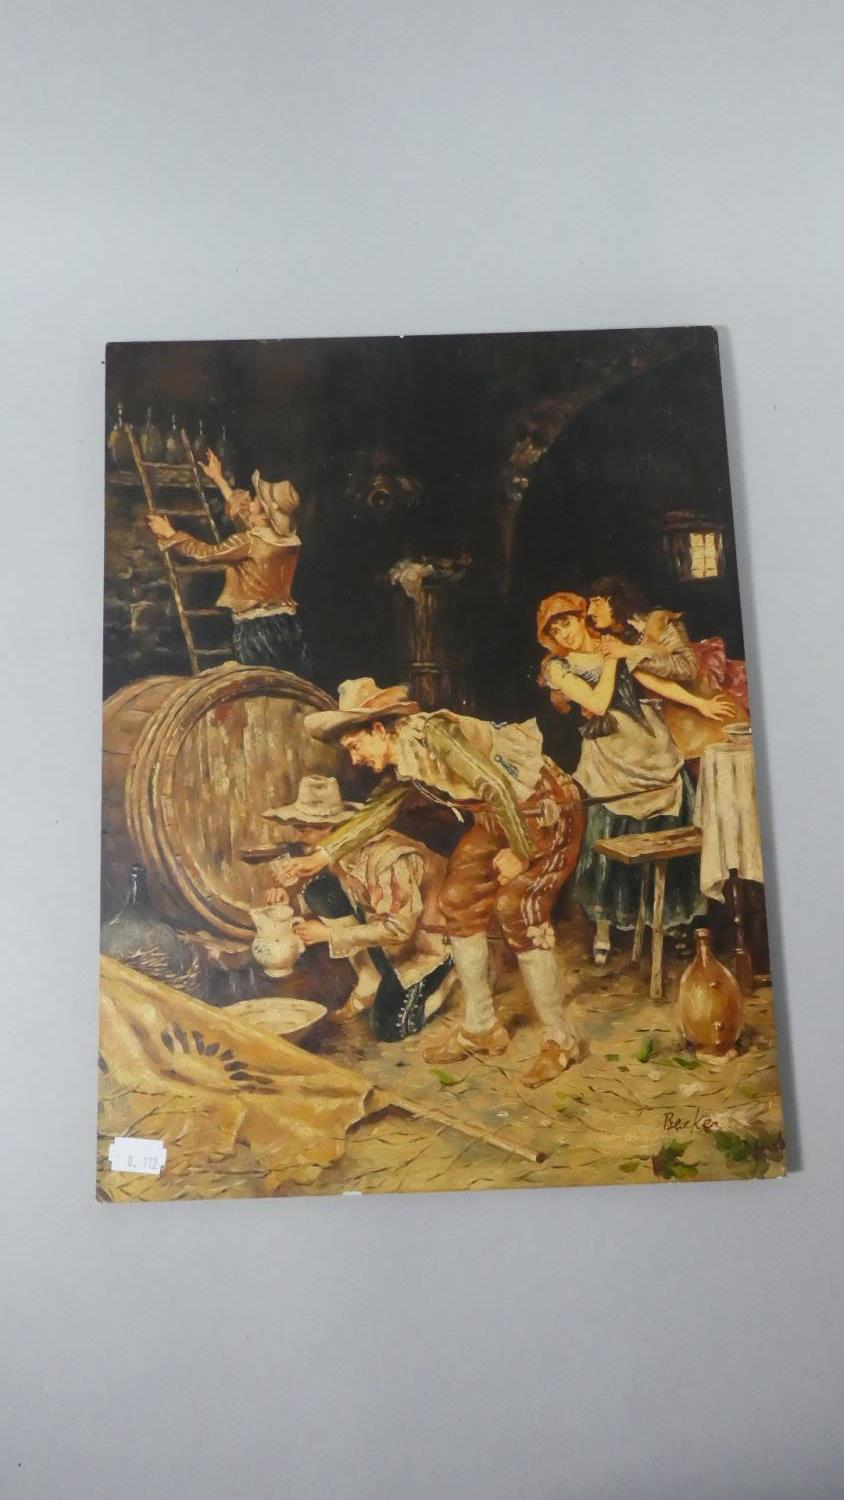 Lot 148 - An Overpainted Print on Board Depicting Continental Tavern Scene After Becker, 40cm High